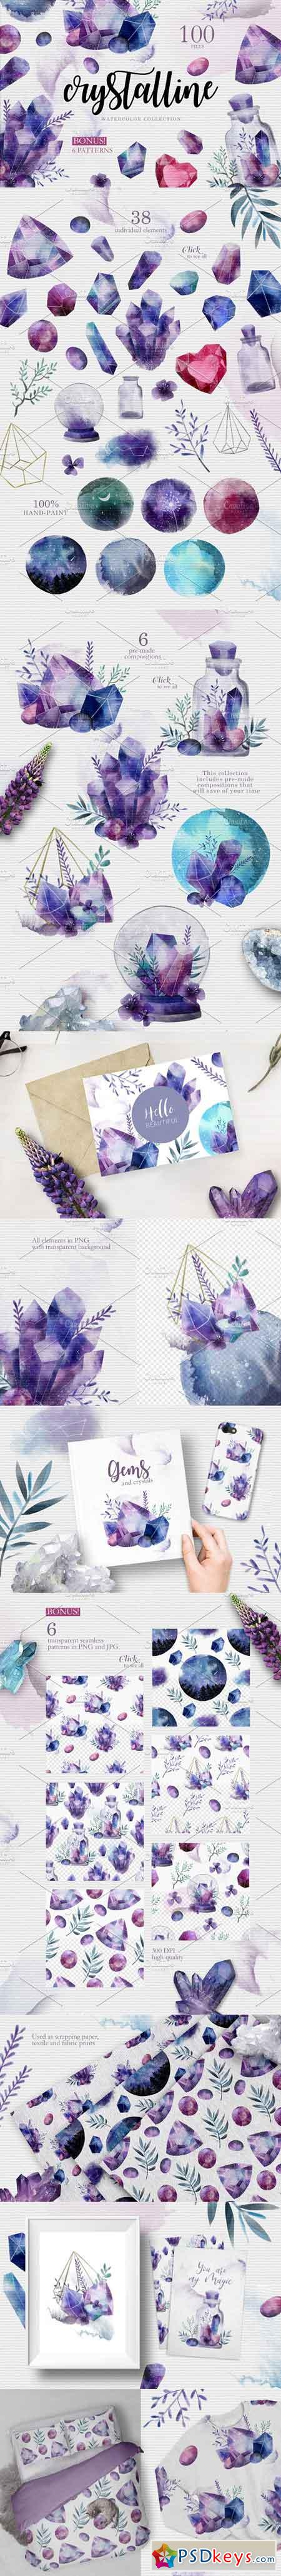 CRYSTALLINE Watercolor Collection 2303631